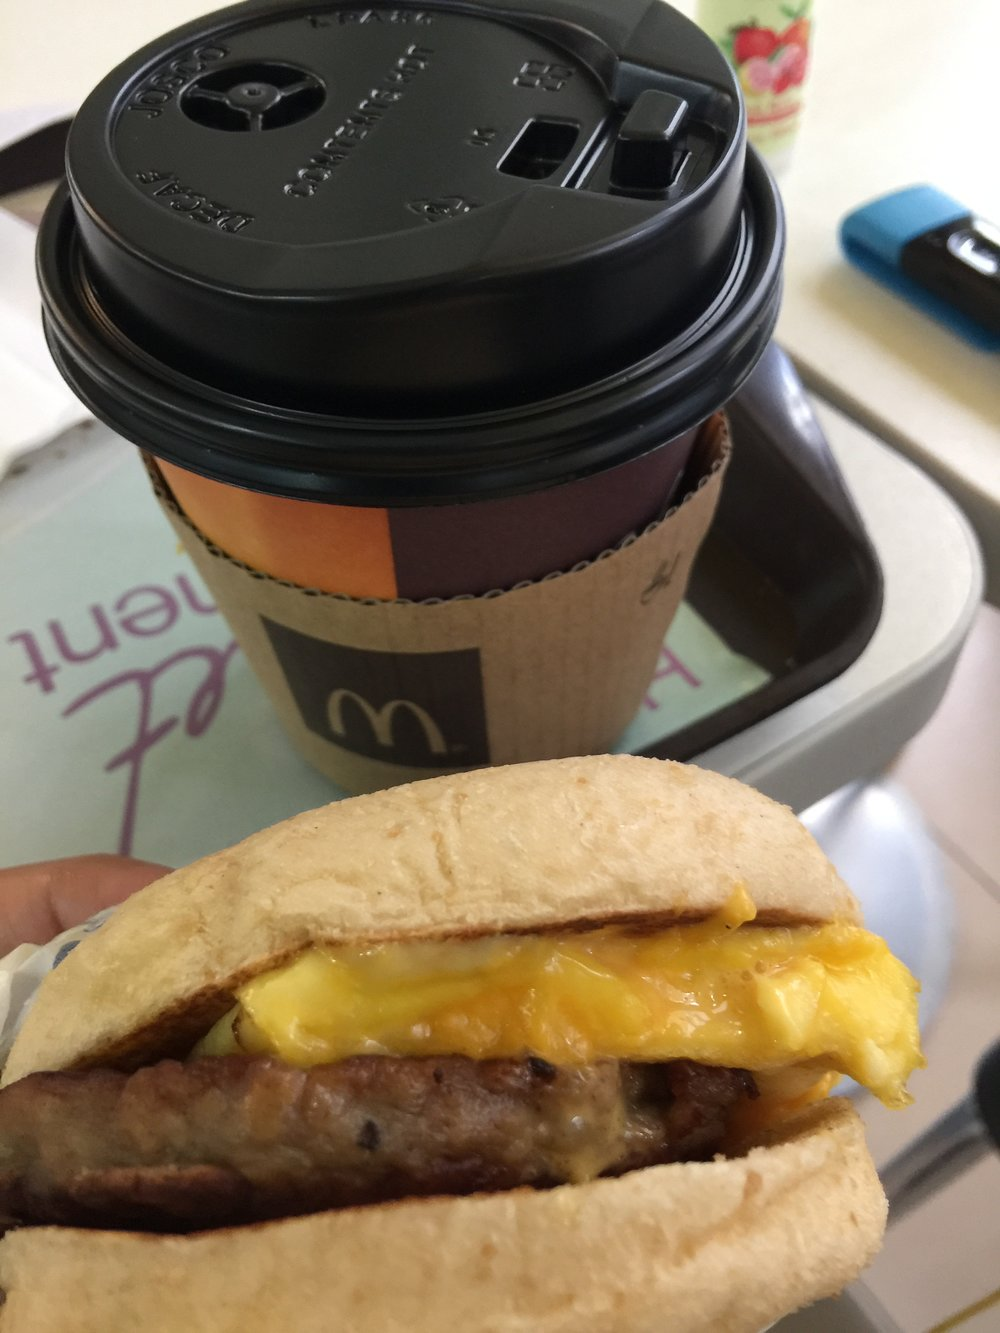 Today's brekkie situation at  Mc Donald's